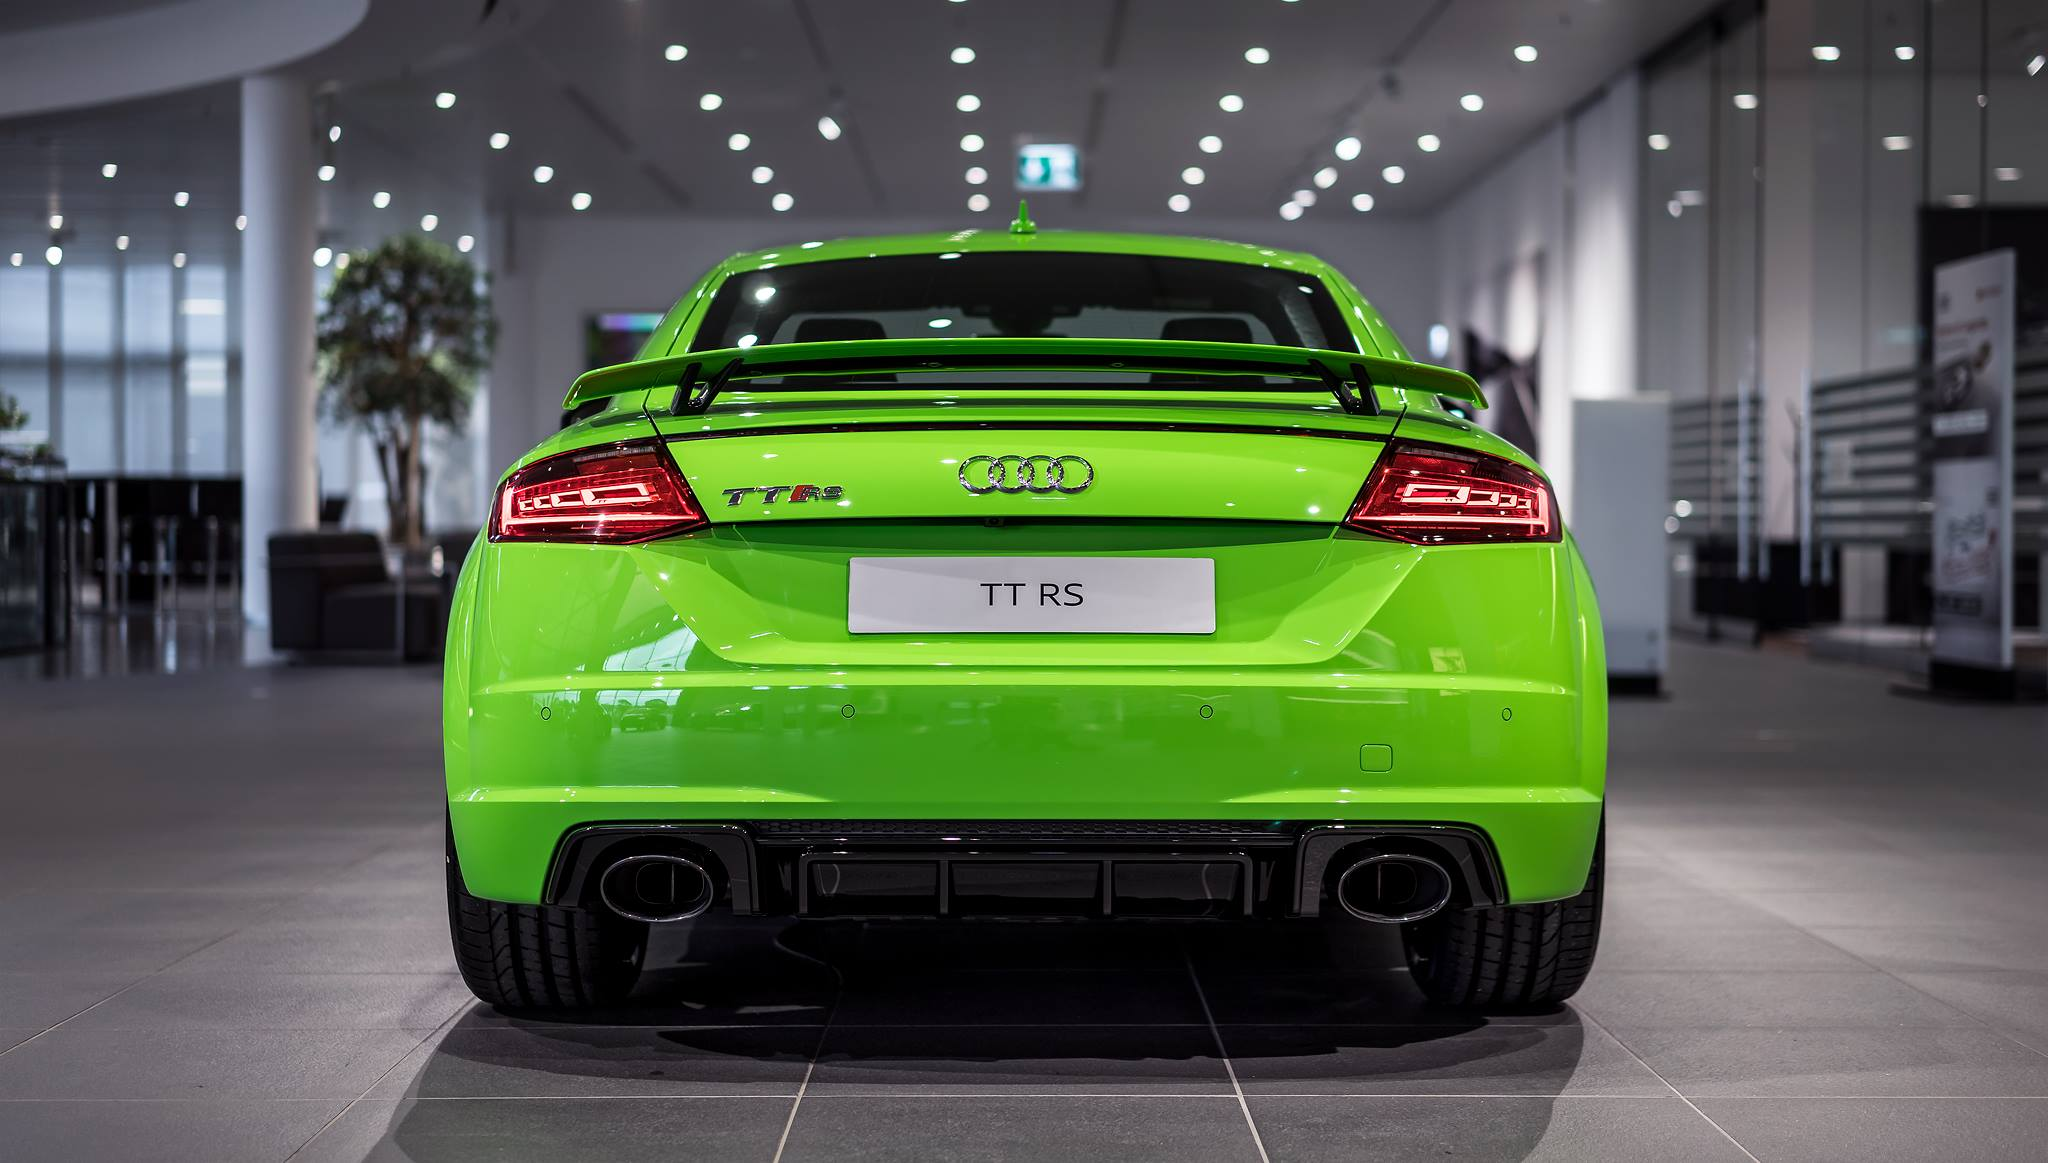 2017 Audi TT RS in Lime Green Looks Like a Tiny Exotic Car ...